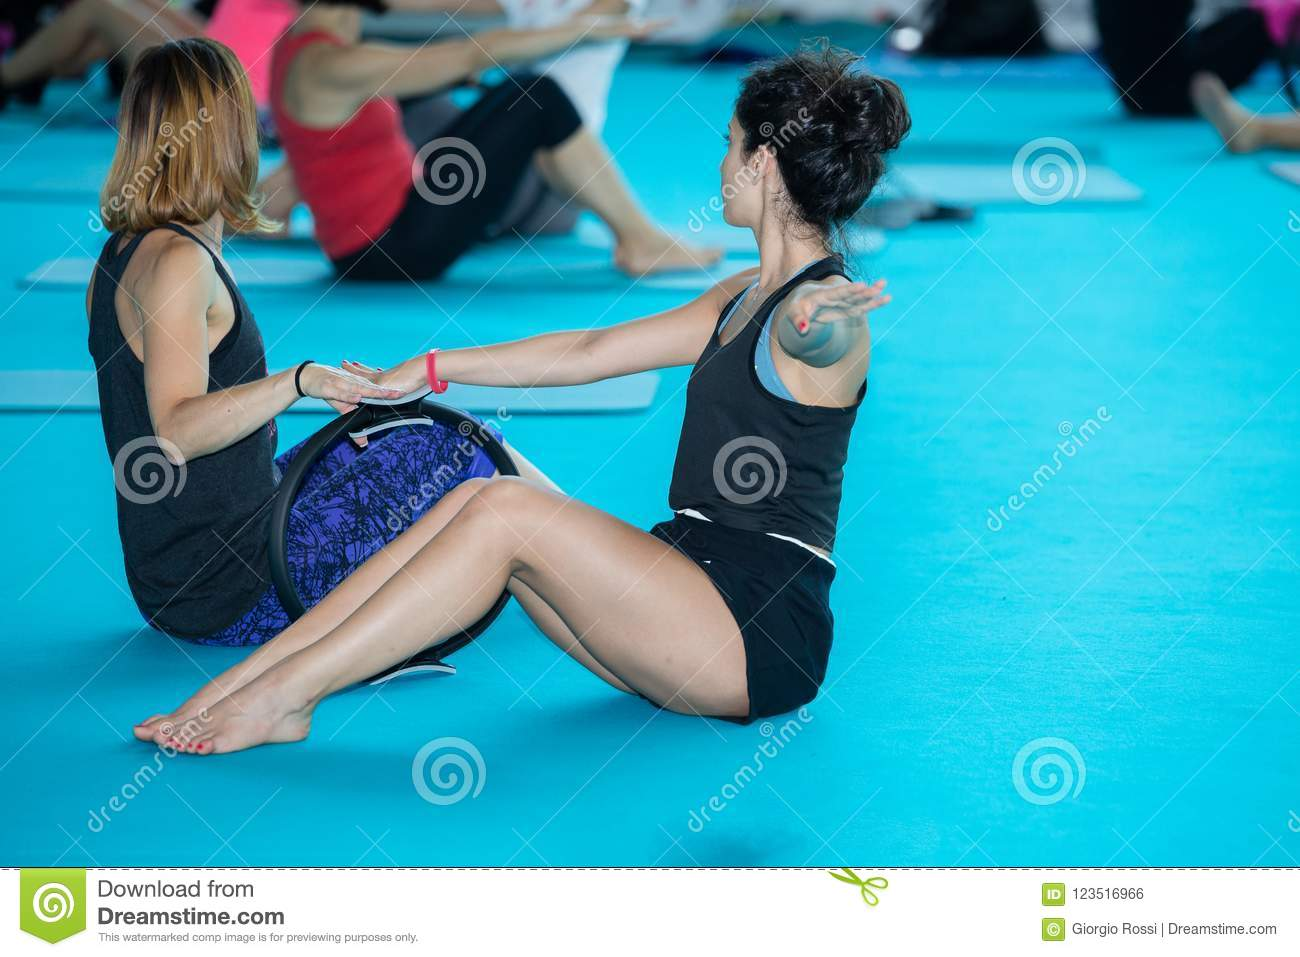 Girls with Outstretched Arms doing Fitness Exercises on Mat at Gym